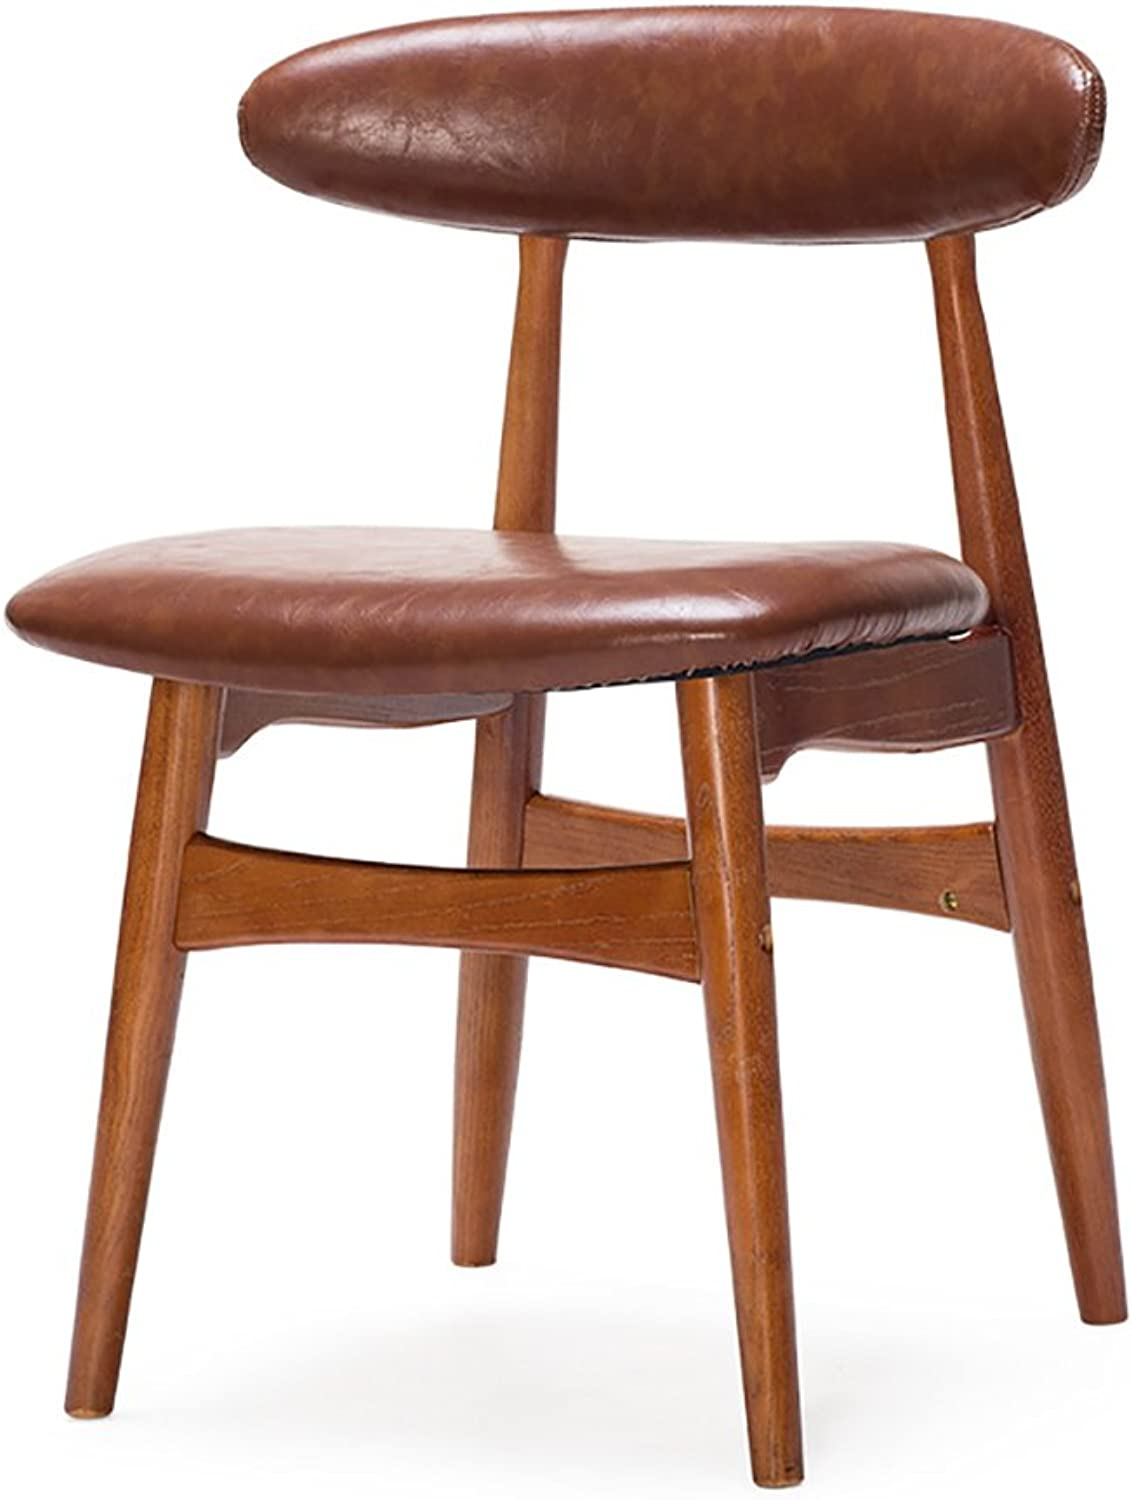 ZJM- Dining Chair Solid Wood Backrest Chair Office Chair Cafe Seating Chair Nordic Retro Light Brown PU Leather Chair Beige (color   Light Brown-A, Size   Set of 1)